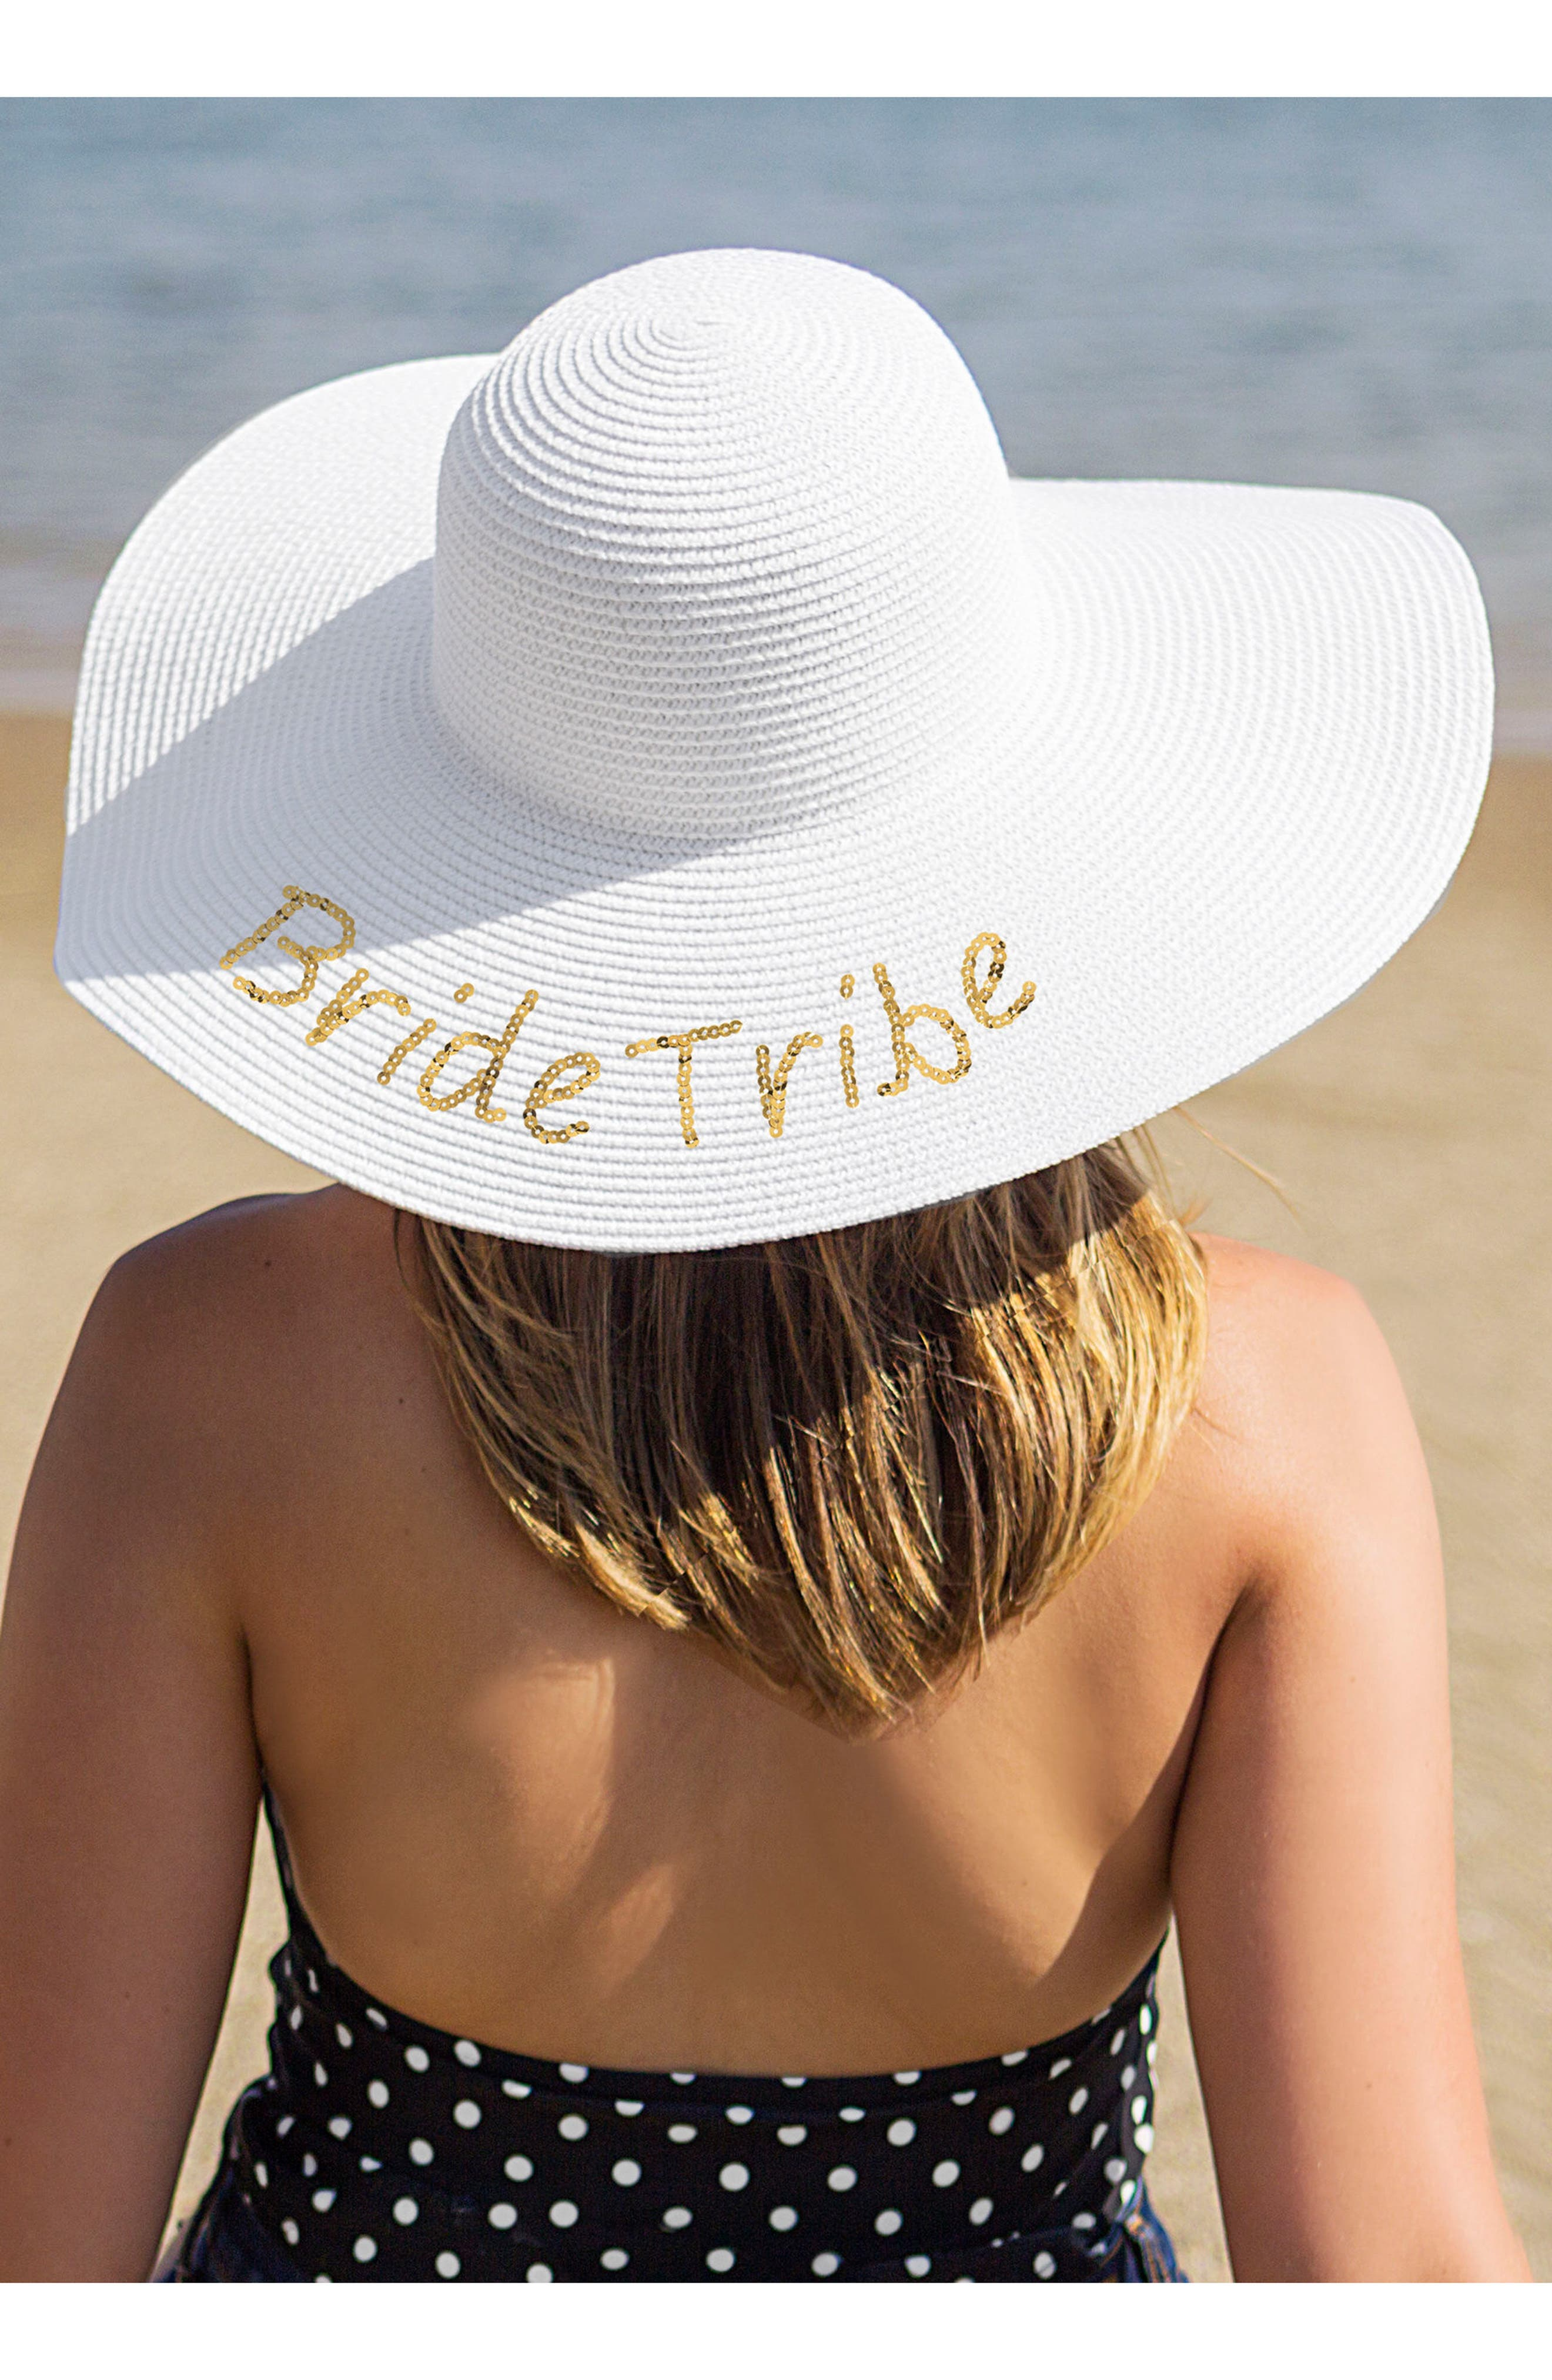 Cathy's Concepts Sequin Bride Tribe Straw Hat